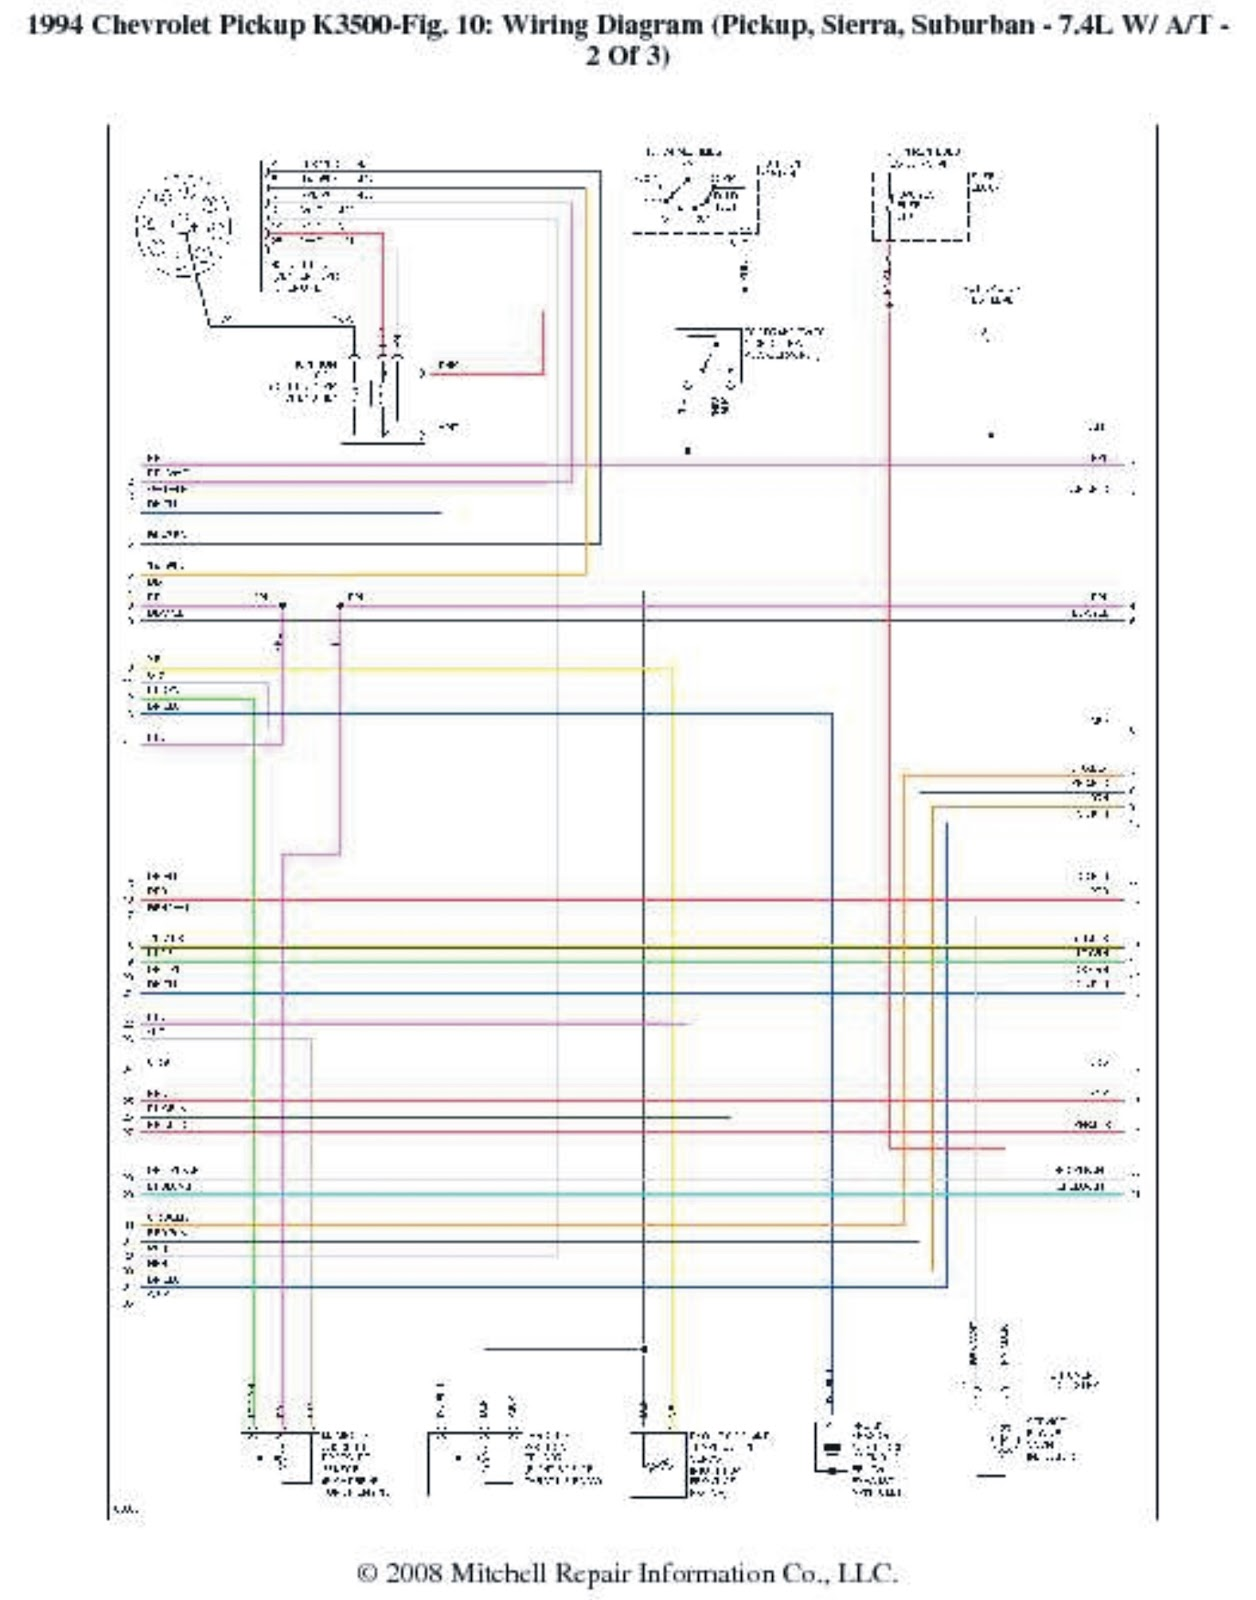 1993 Chevy K3500 Wiring Diagram Library Fuse Box For Pickup Toyota Tail Light 1986 Diagramrh